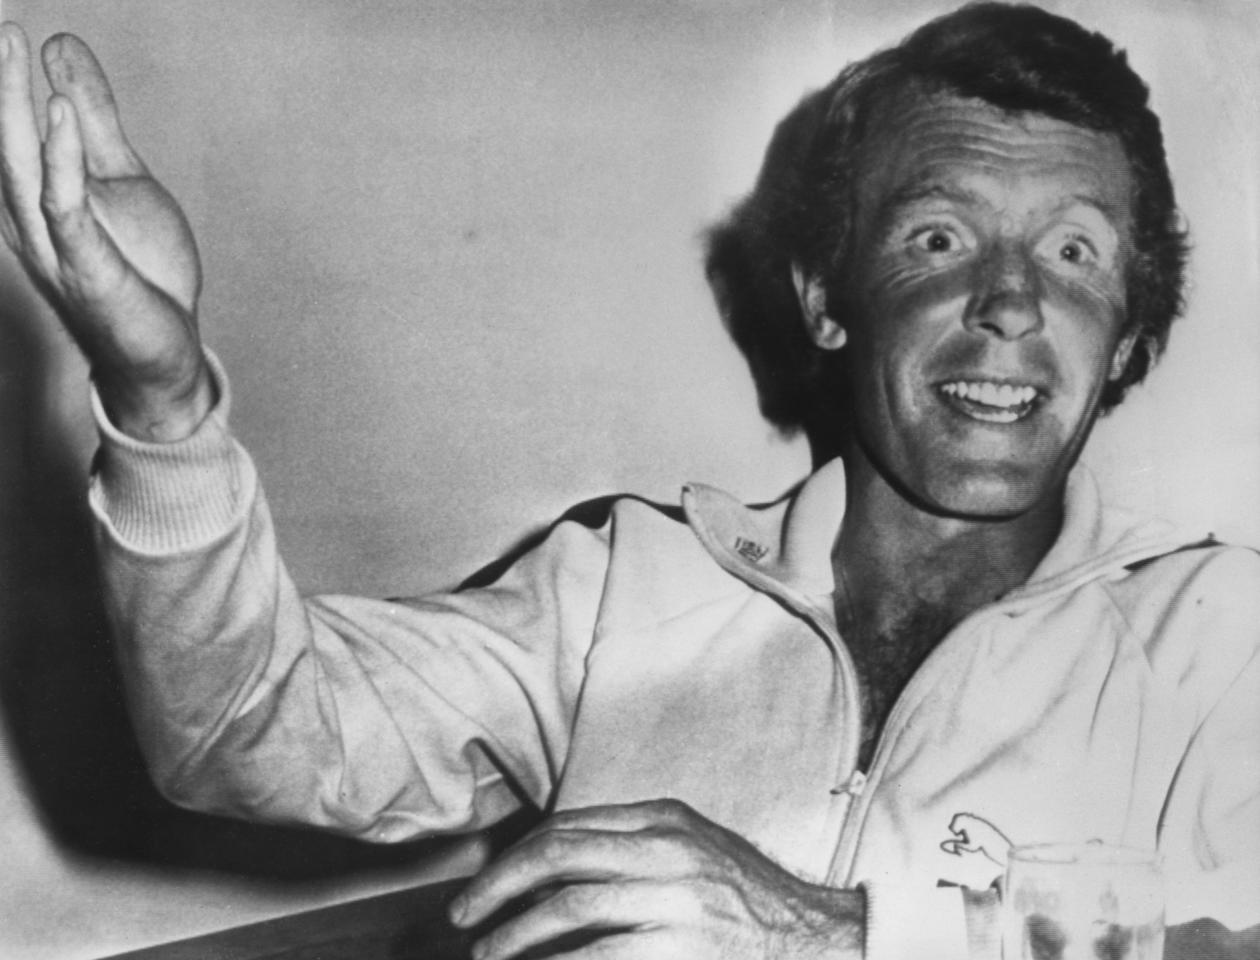 Scottish cricketer and England captain Mike Denness in the dressing room after his team's victory in the final Test at Melbourne, Australia, 13th February 1975. (Photo by Keystone/Hulton Archive/Getty Images)